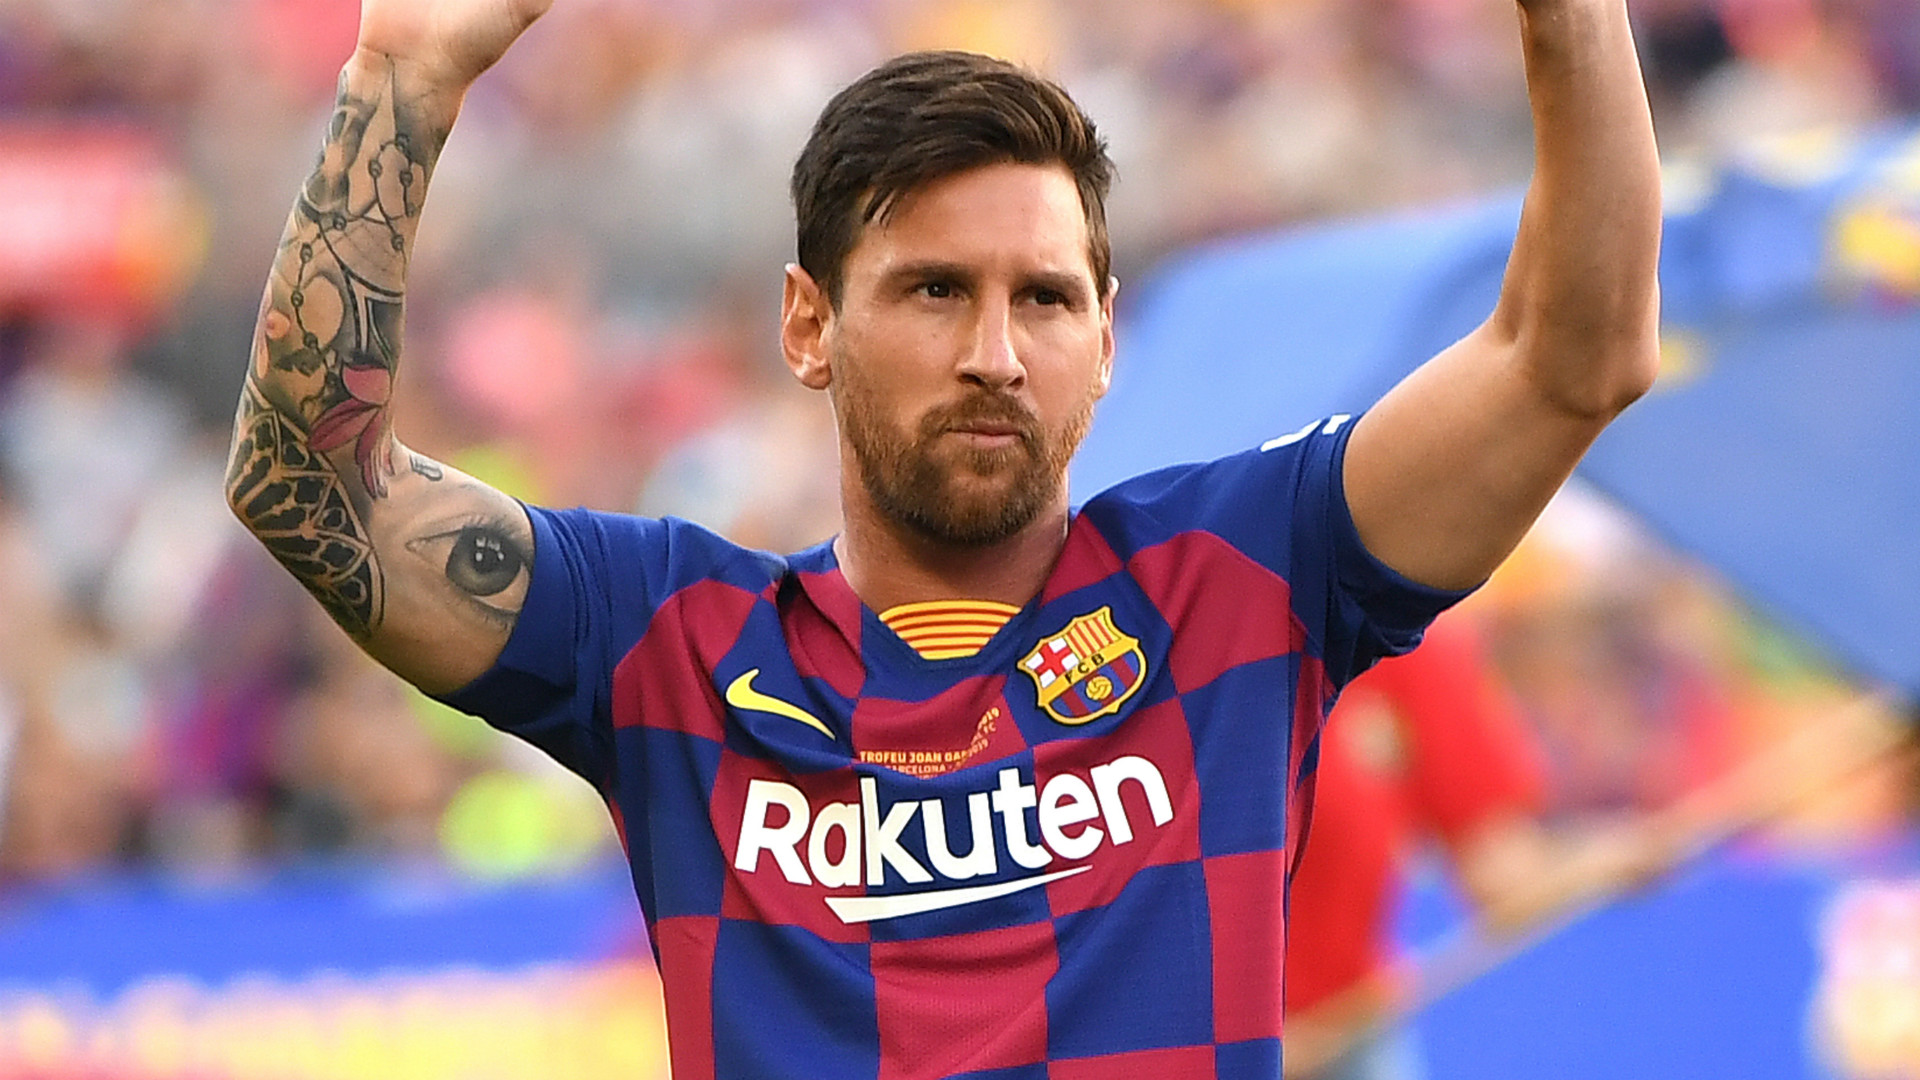 Lionel Messi To Miss Barcelona's U.S. Tour With Injury